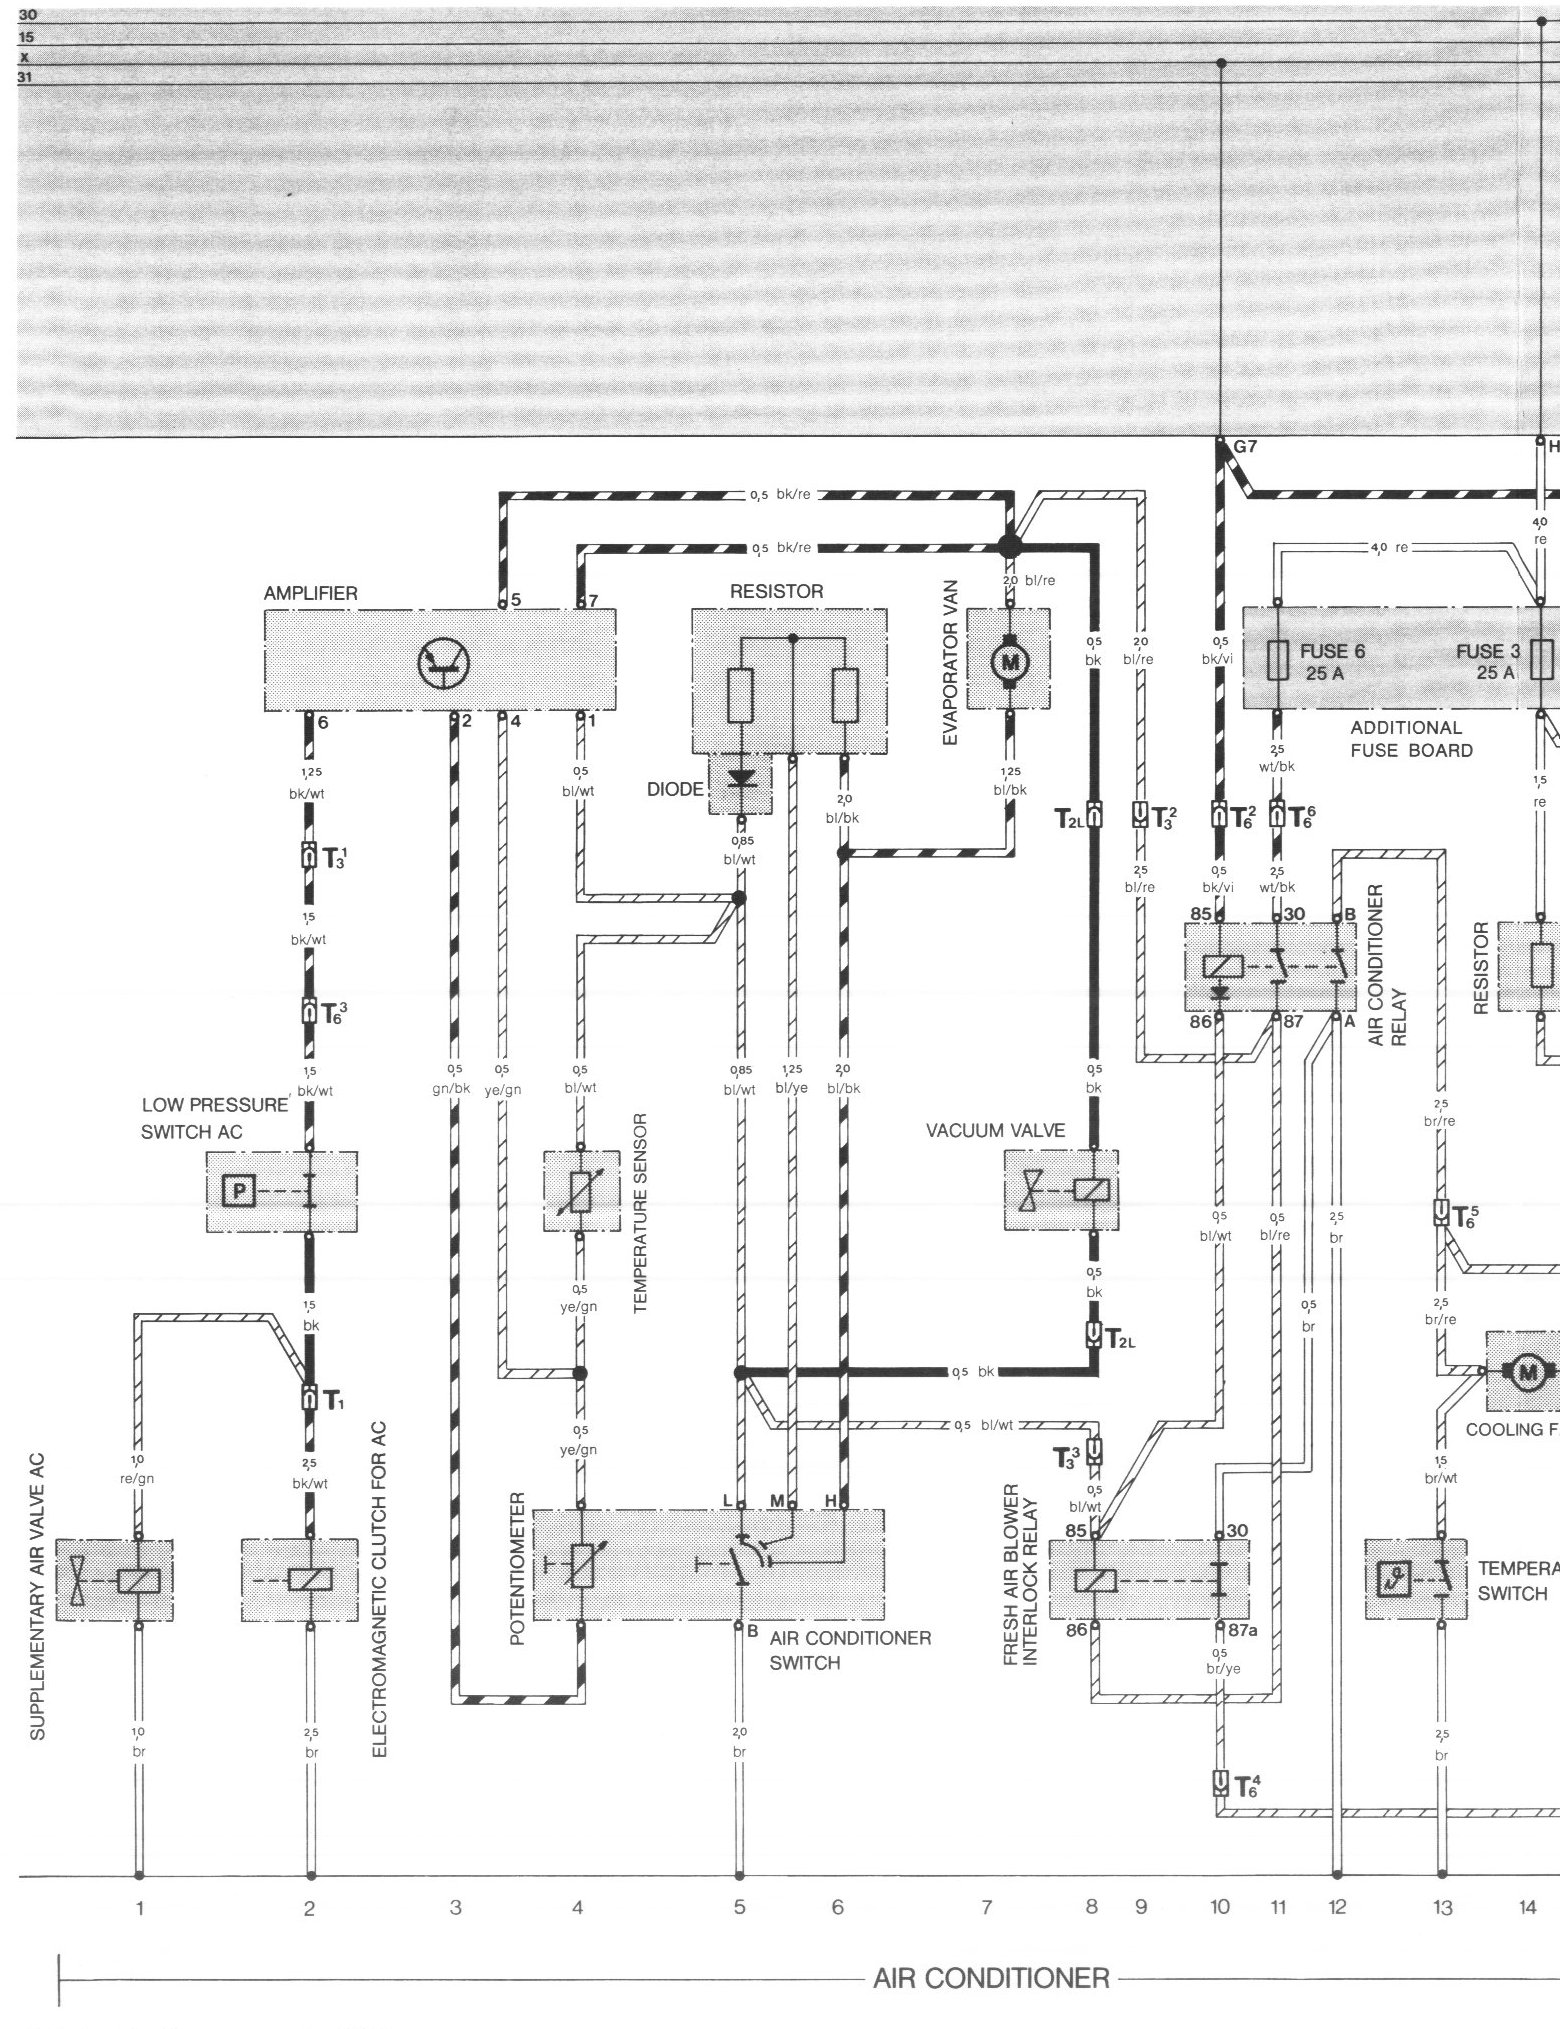 also Wiring Diagram Type S Model Sheet Porsche Electrics Of Porsche Wiring Diagram also  also  furthermore . on 1984 porsche 944 wiring diagram